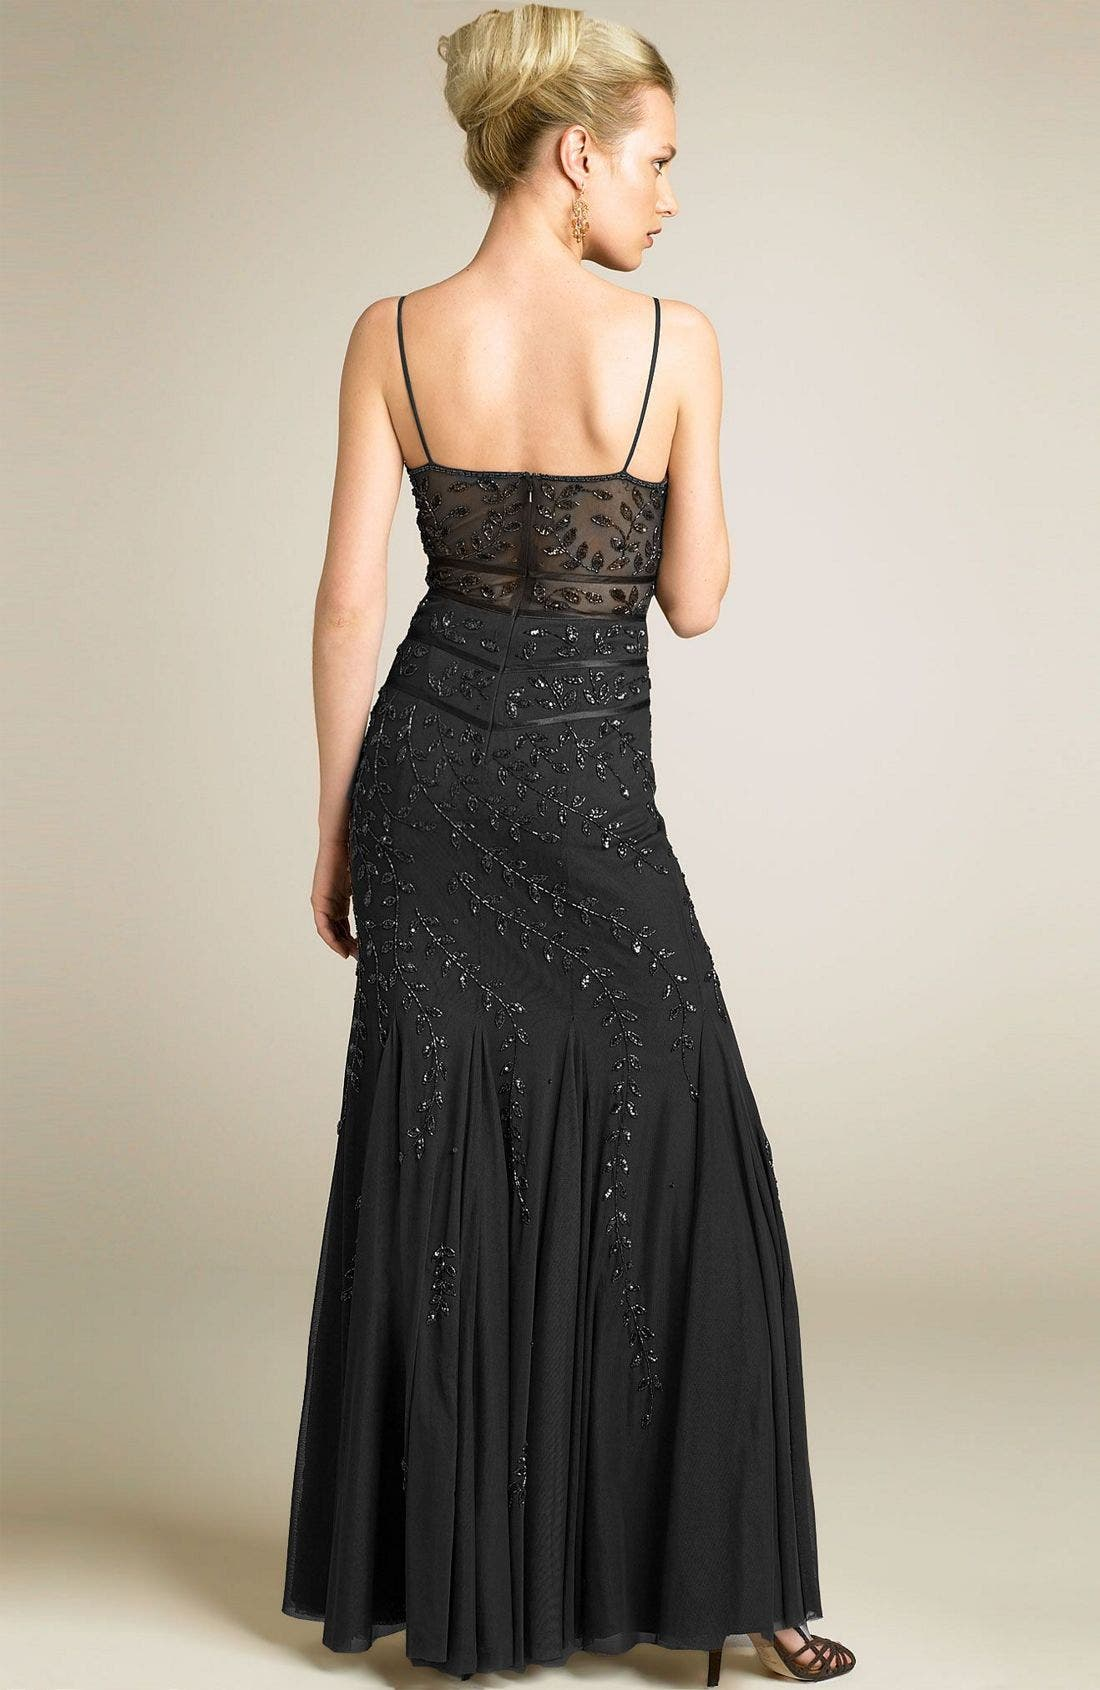 Beaded Illusion Inset Gown,                             Alternate thumbnail 2, color,                             BLK